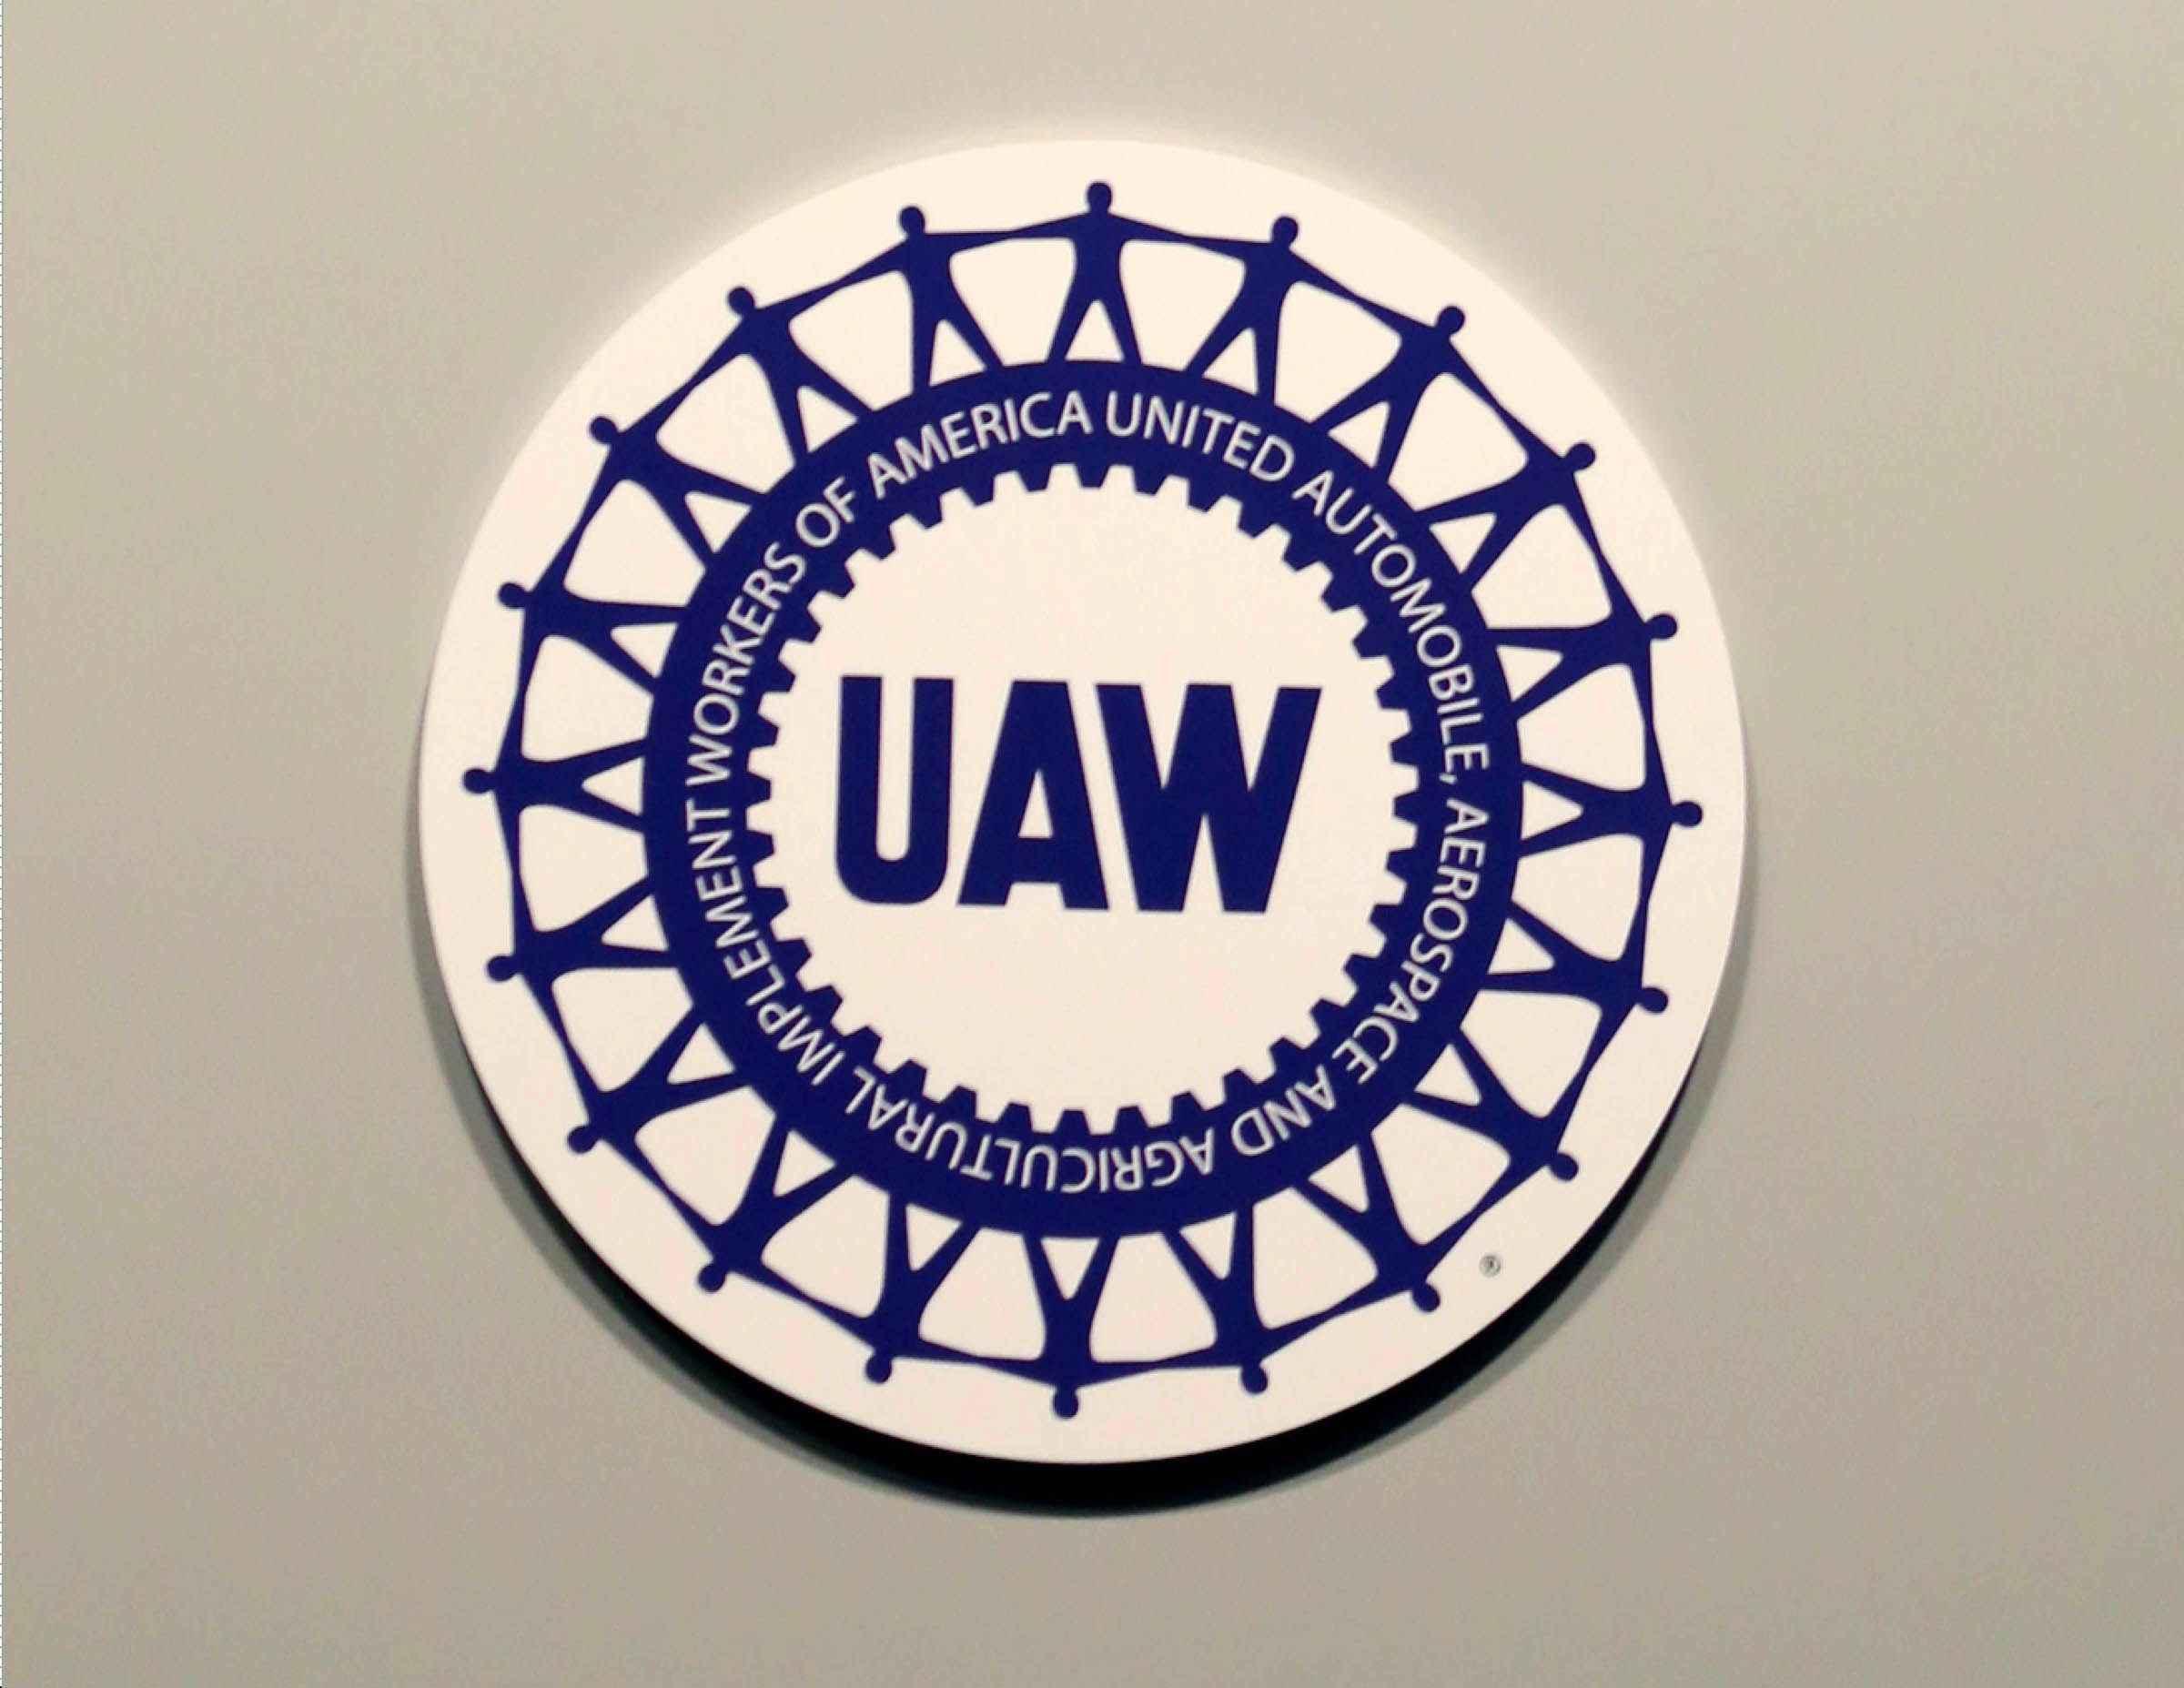 UAW sets GM janitorial workers' contract to expire; strike could halt auto production